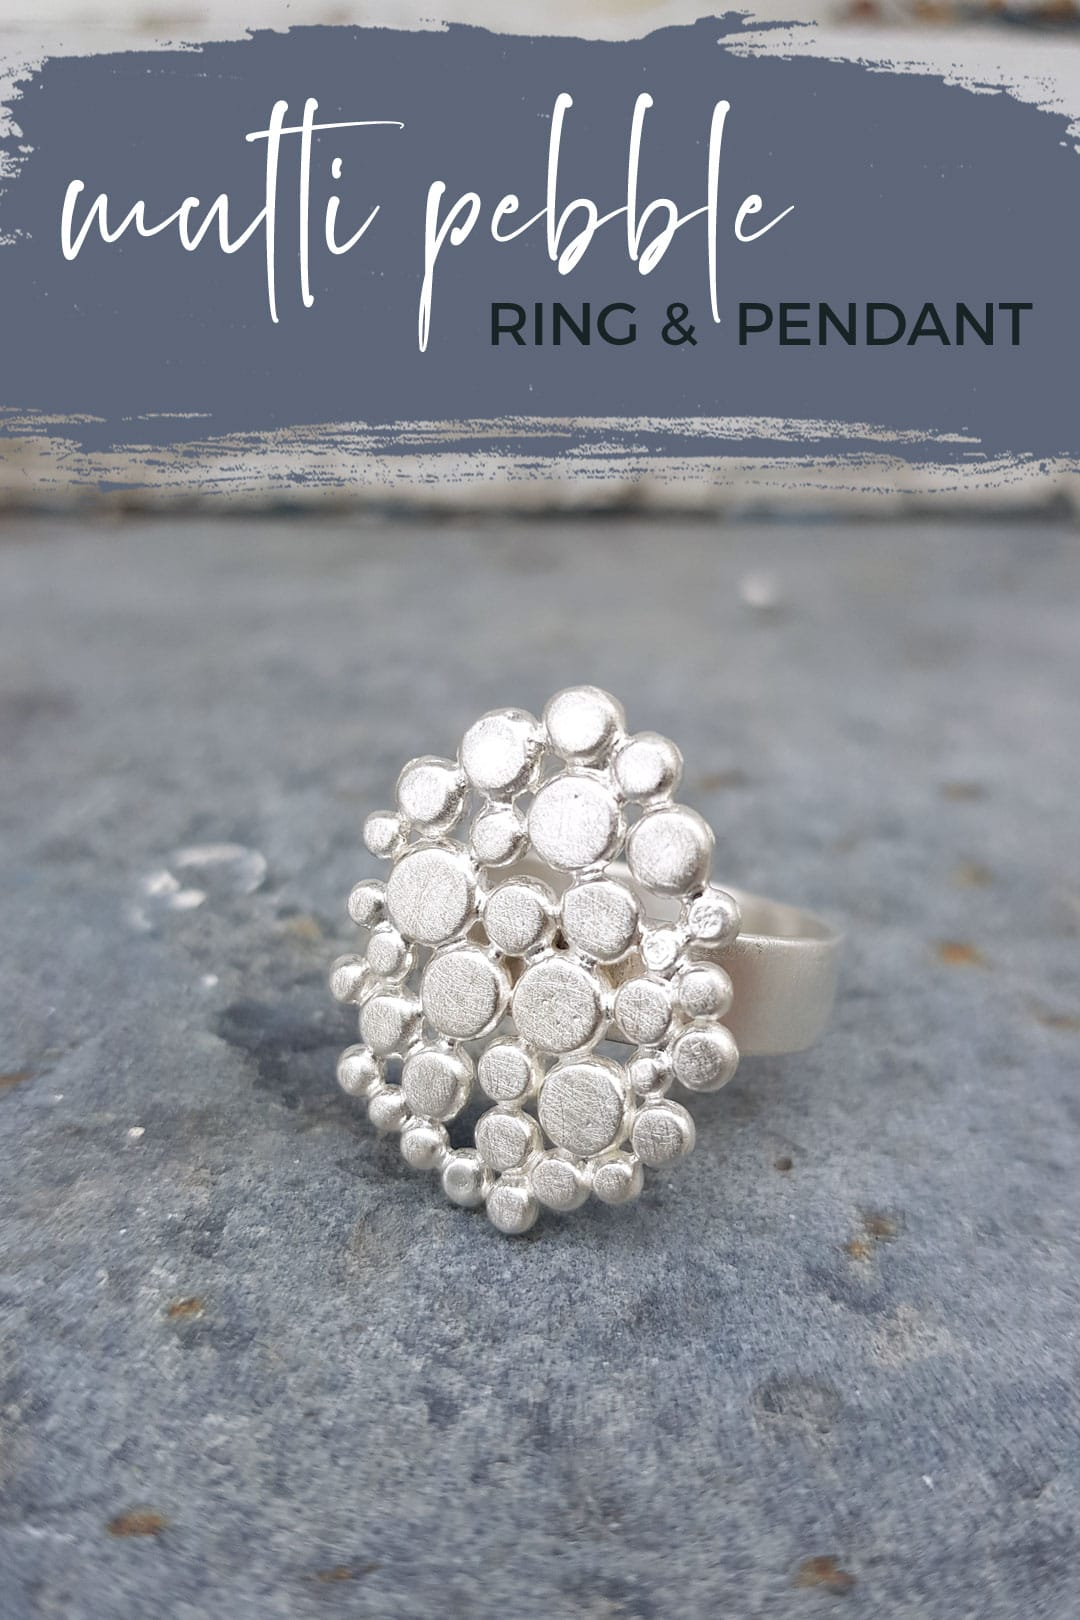 Multi pebble ring in brushed silver